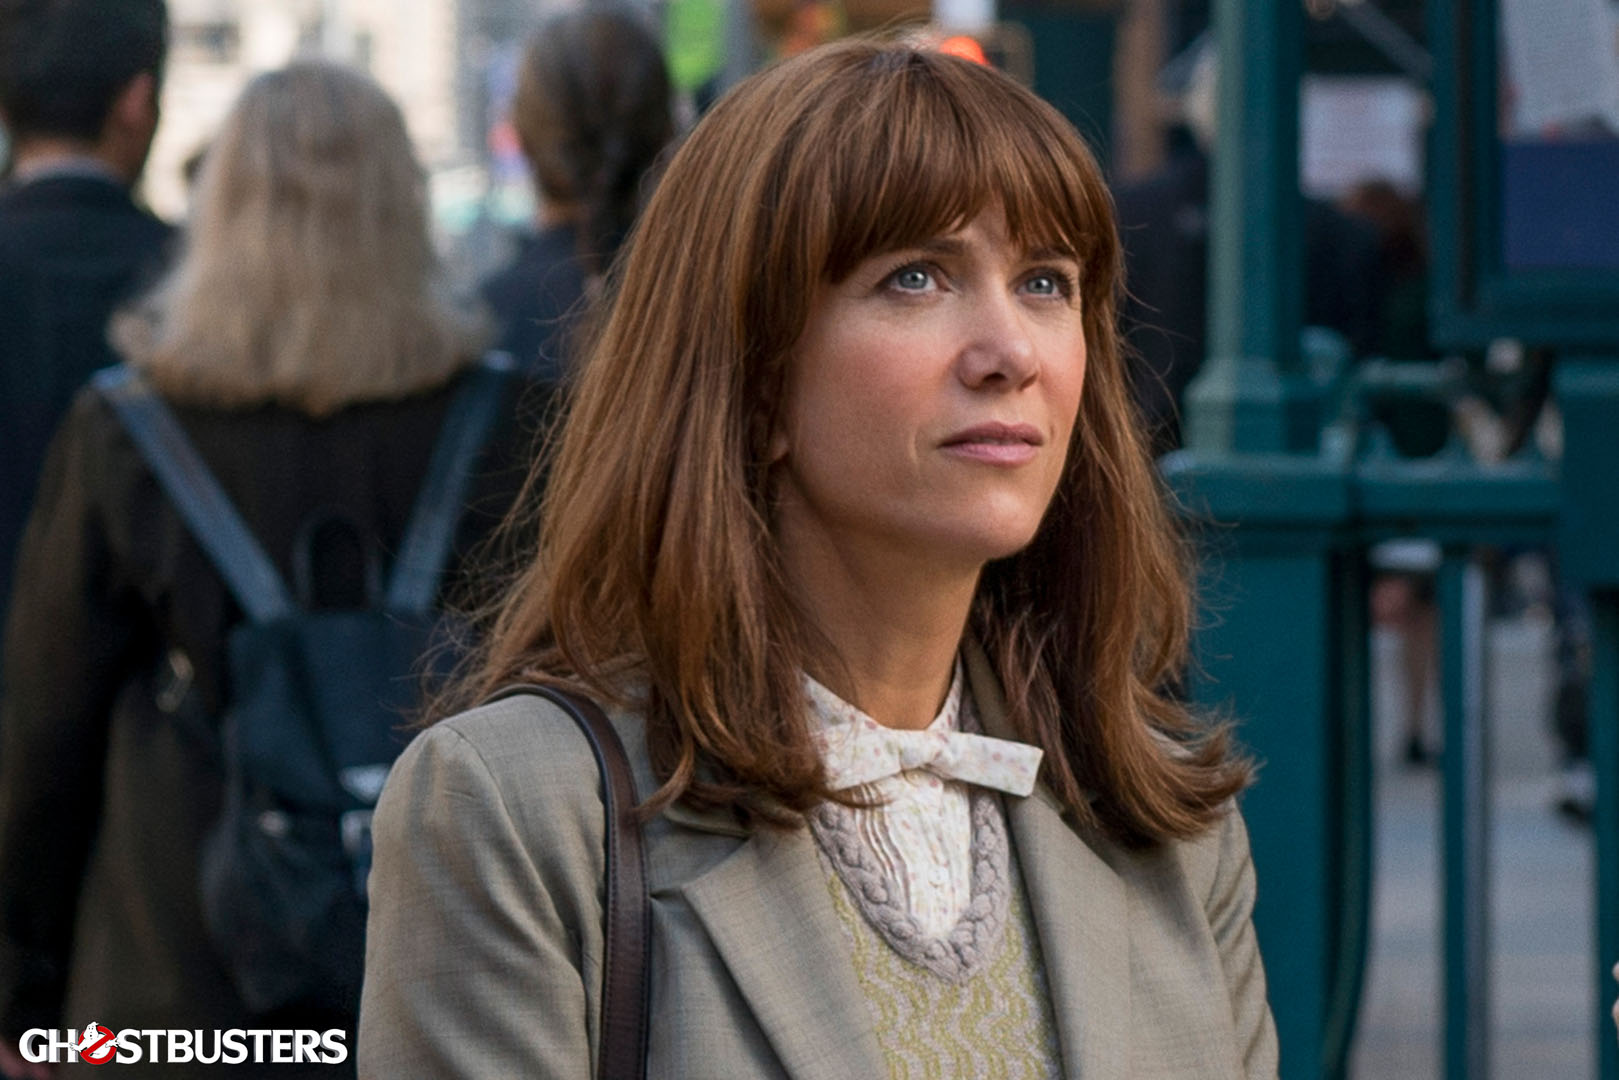 New Picture of Kristen Wiig in 'Ghostbusters'